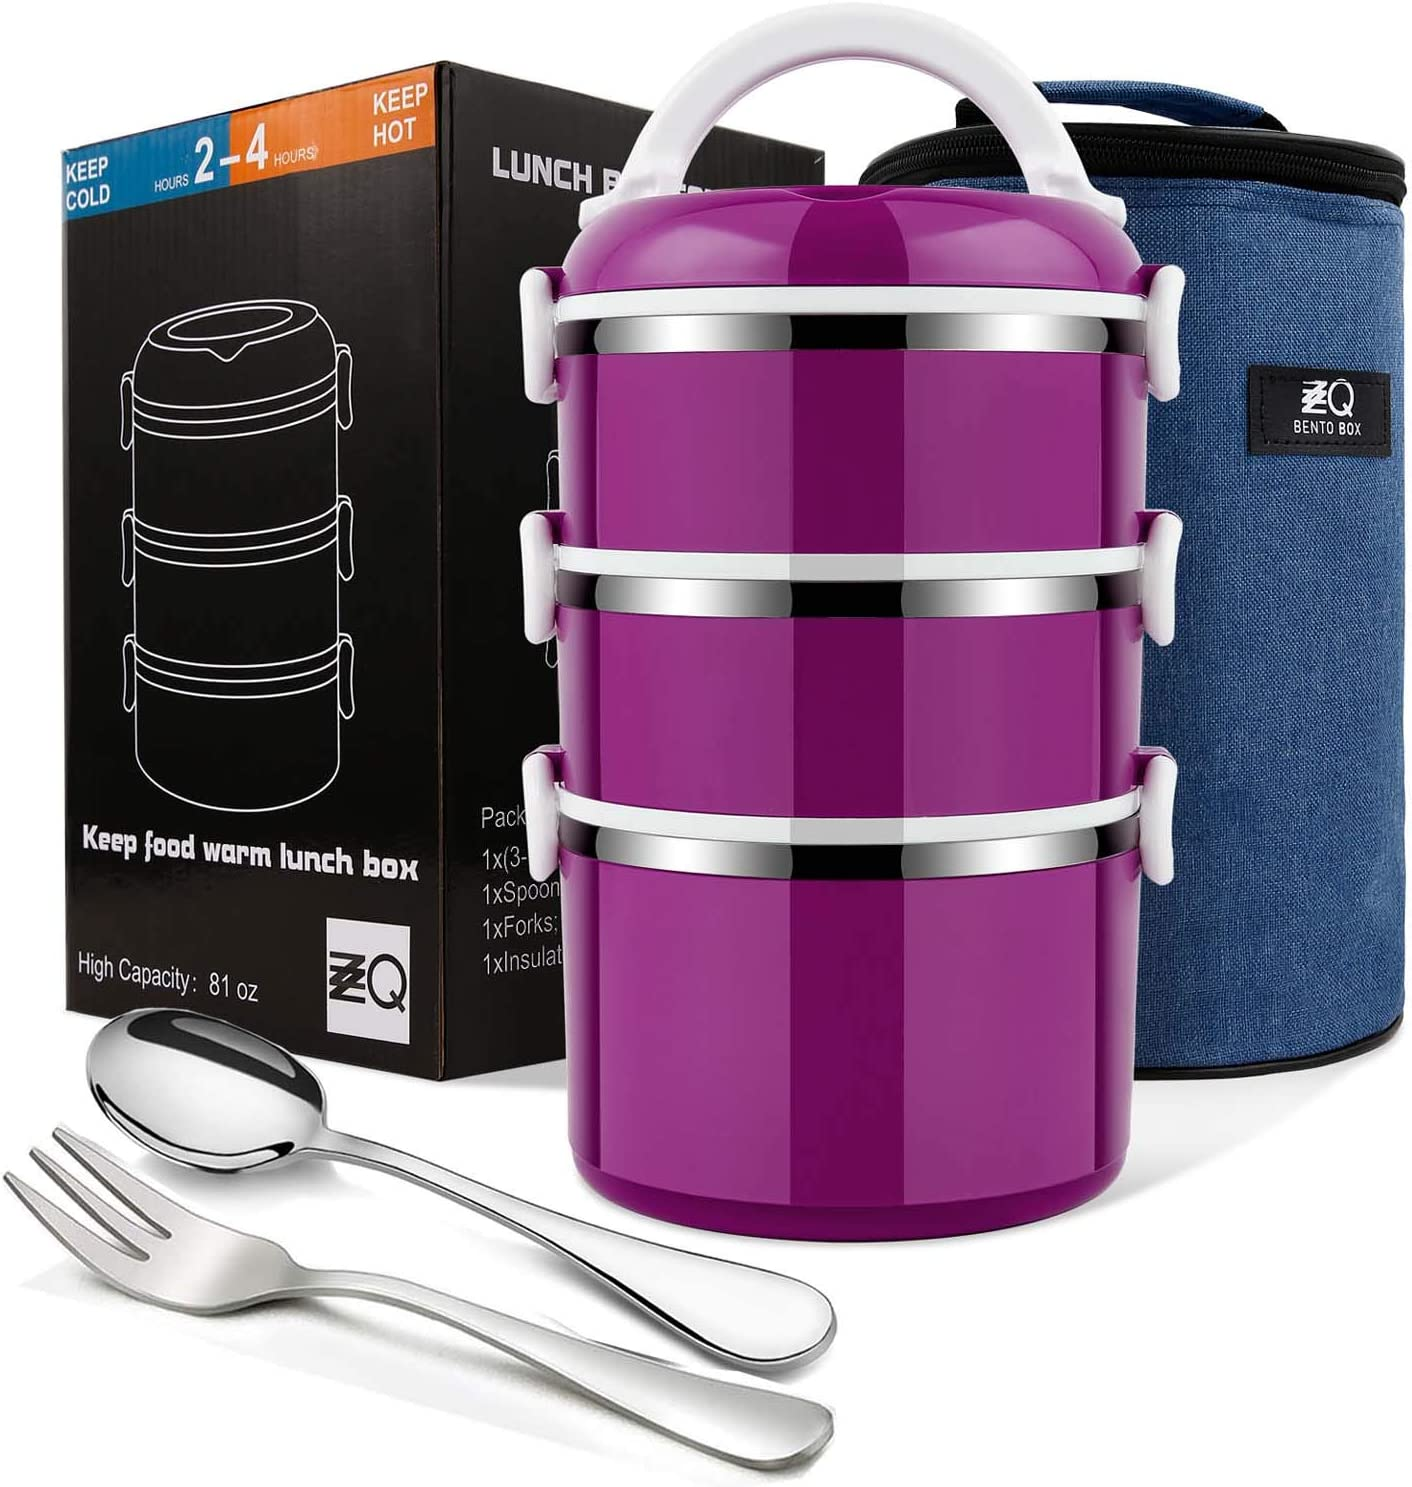 ZZQ Bento Lunch Box Stackable Stainless Steel Thermal Compartment Lunch Container/Snack Box, Leakproof Insulated Bento/Food Container Storage with Lunch Bag & Spoon Fork, 3-Tier (Purple)